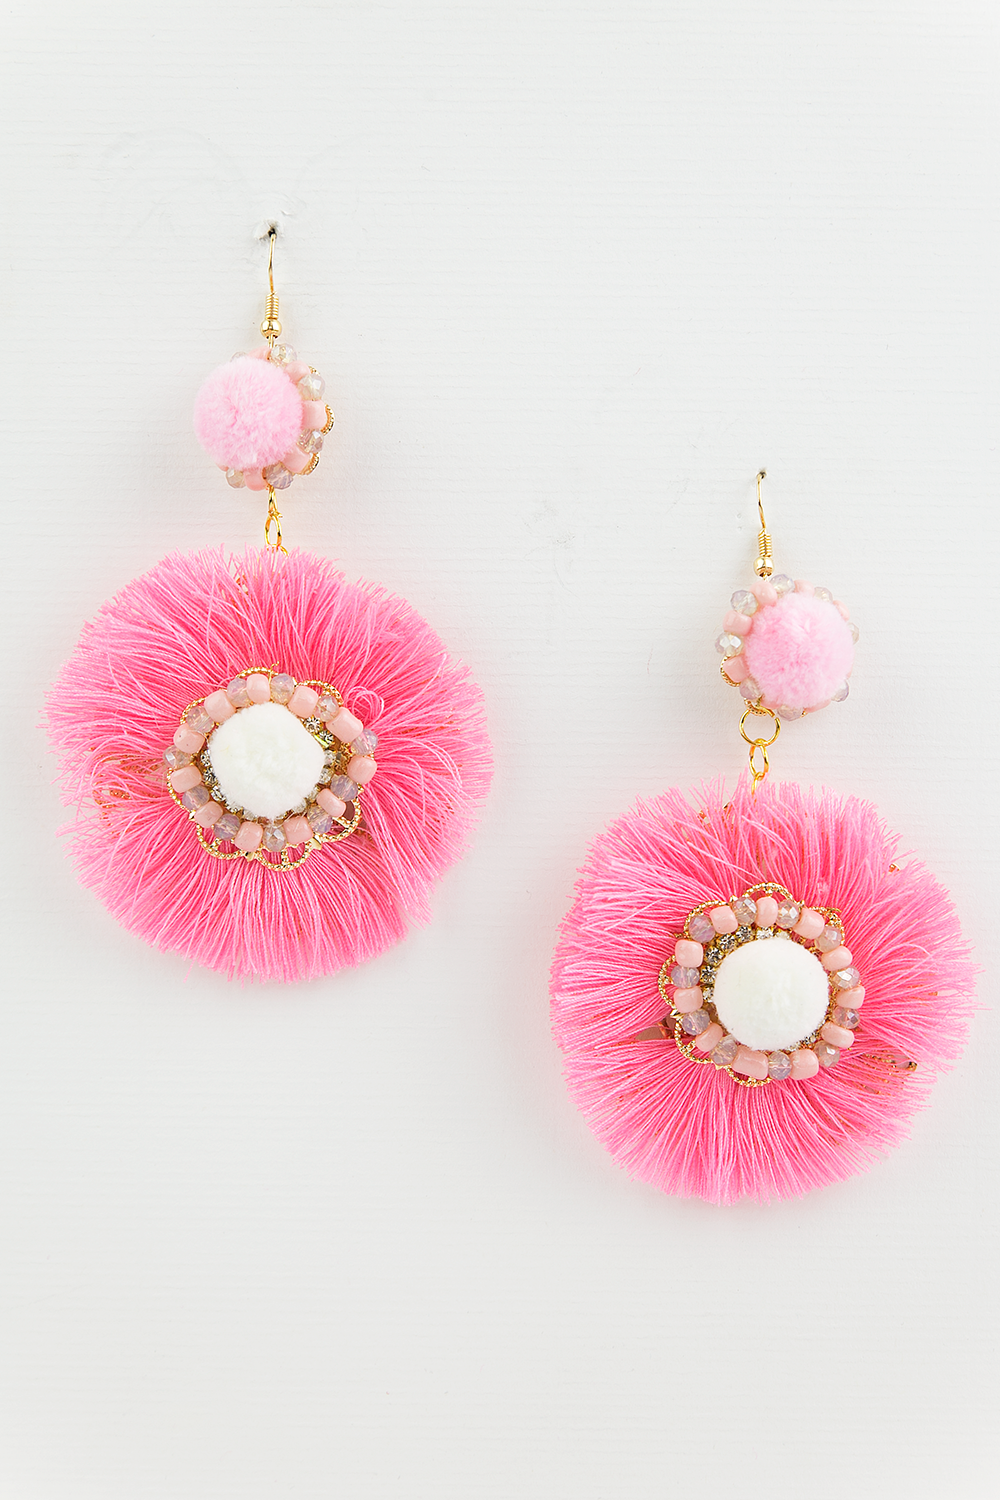 All of Me Fringe Earrings - Pink - Haute & Rebellious